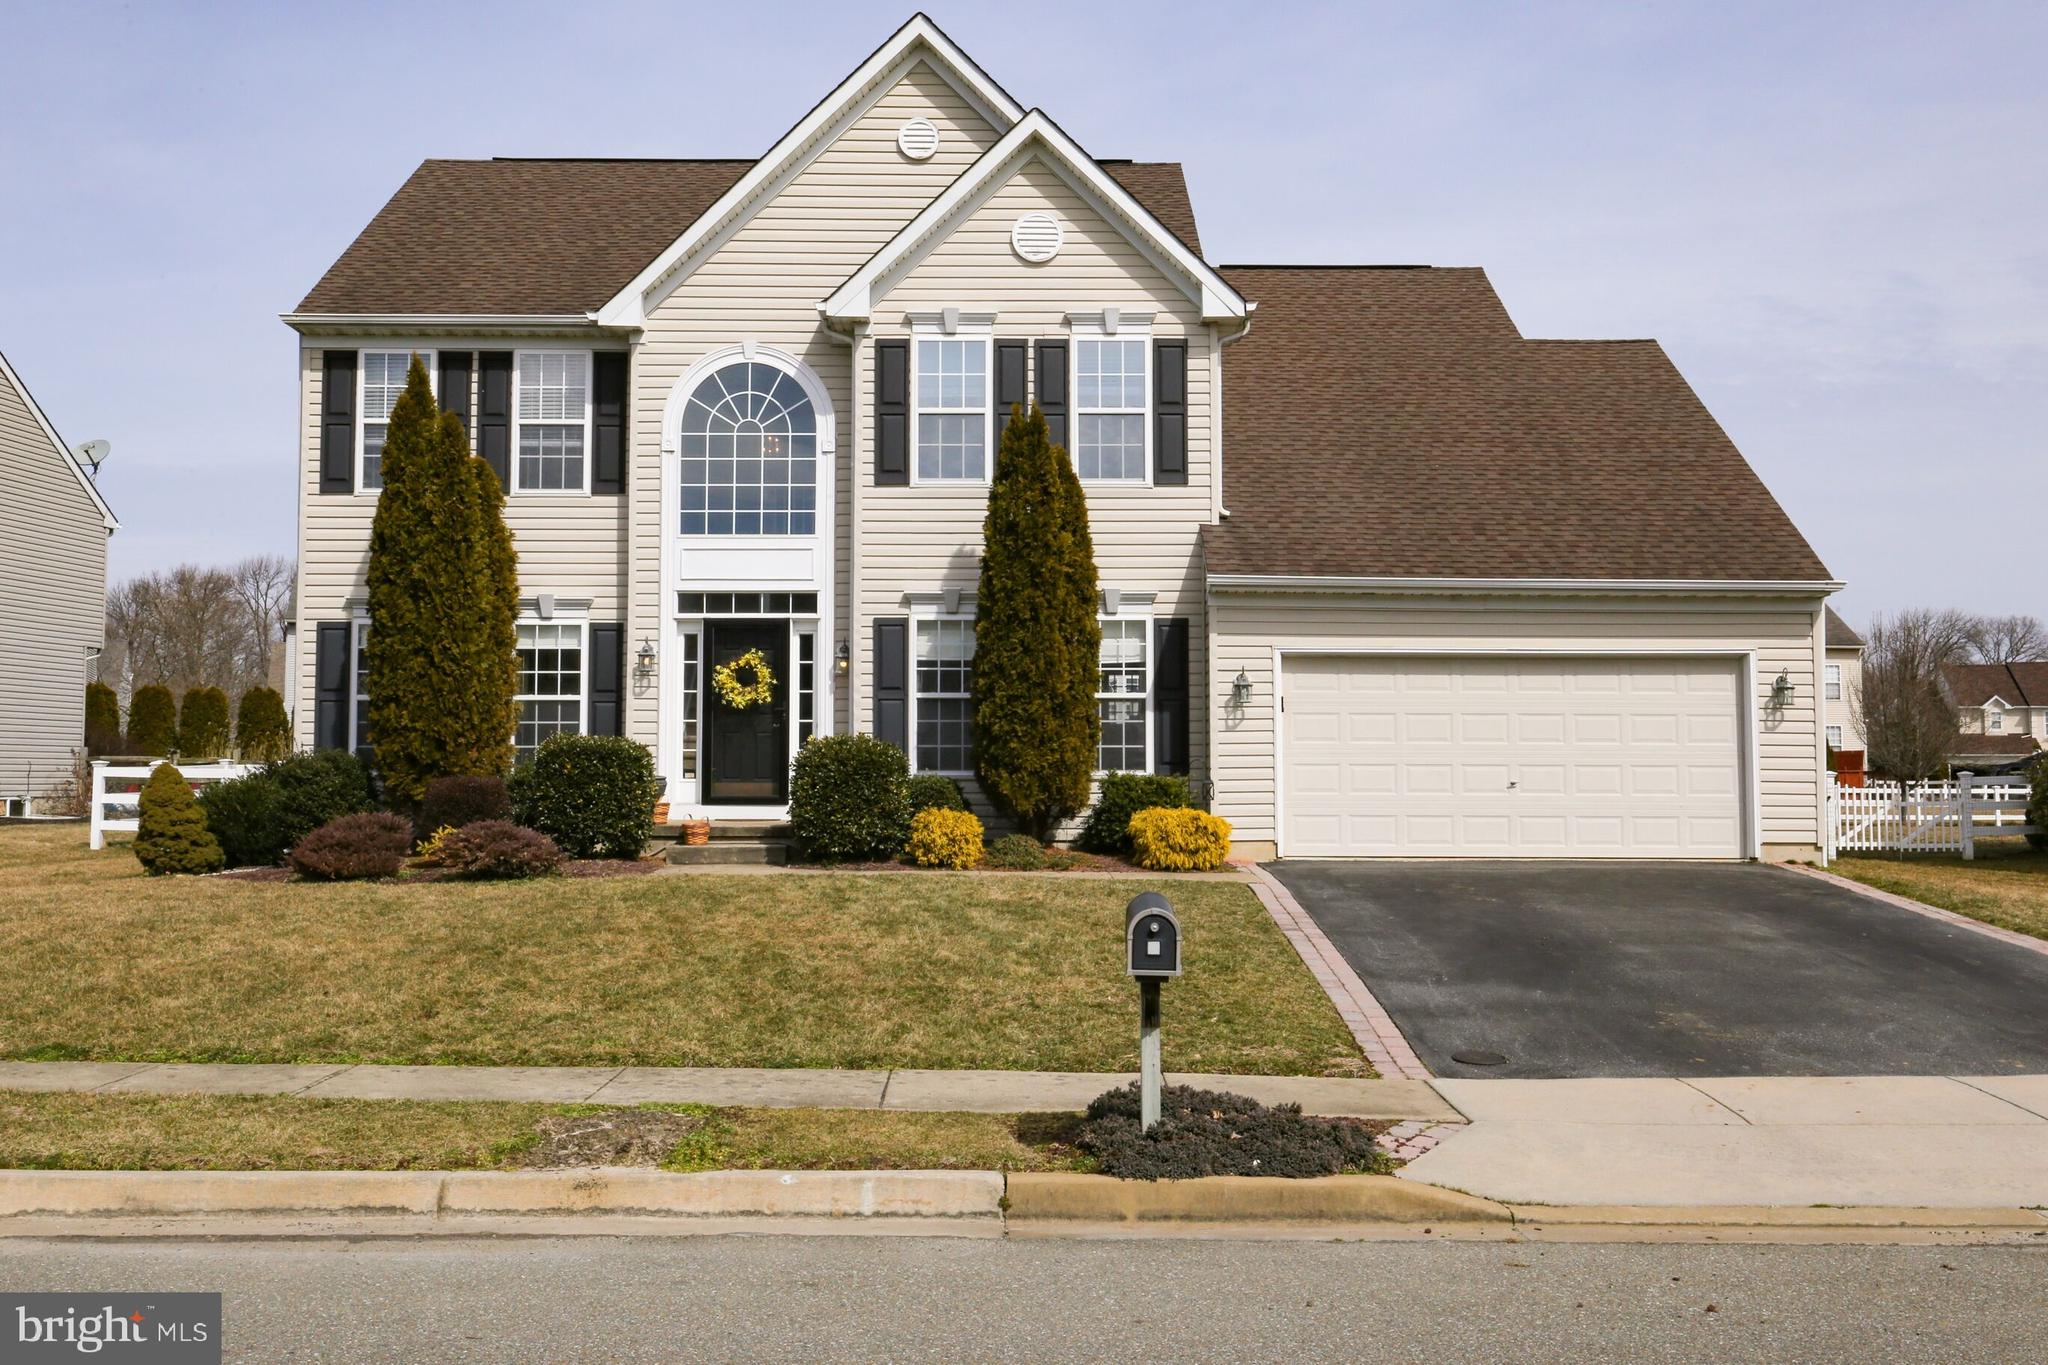 Beautiful 4 bedroom 2.1 bath home in the sought after golf course community of The Legends and Appoquinimink School District!  Located on a quiet cul-de-sac, this home is sure to please.  Step into the 2 story foyer onto the hardwood flooring which leads you to the lovely eat-in kitchen equipped with an island, stainless refrigerator and dishwasher, new granite counter tops and a BRAND NEW stove.  The open concept from kitchen to family room where the hardwood floor continues along with a cozy fireplace to spend those chilly evenings.  Down the hall is the laundry area and an office or playroom. The BRAND NEW carpet in the formal dining and living rooms travels all the way up the stairs and throughout the 2nd floor.  The spacious master bedroom has vaulted ceilings, roomy closets and it's own master bathroom suite featuring a double vanity and separate soaking tub and shower.  This 2nd floor is finished off with three roomy bedrooms and a full bathroom with BRAND NEW vinyl plank flooring.  Head down to the enormous finished basement with 9FT CEILINGS that can be utilized for movies, gaming, working out...the possibilities are endless!  Plus an unfinished area, great for storage. Basement has Bilco doors as well. (BRAND NEW hot water heater 2019)  Moving out back to the large, fenced,  flat backyard with brick patio...perfect for bar-b-ques or just relaxing after a long day.  All of this with the option of a golf course and/or club house with pool, restaurant and tennis courts in the top-rated Appoquinimink School District!  Room sizes are approximate.